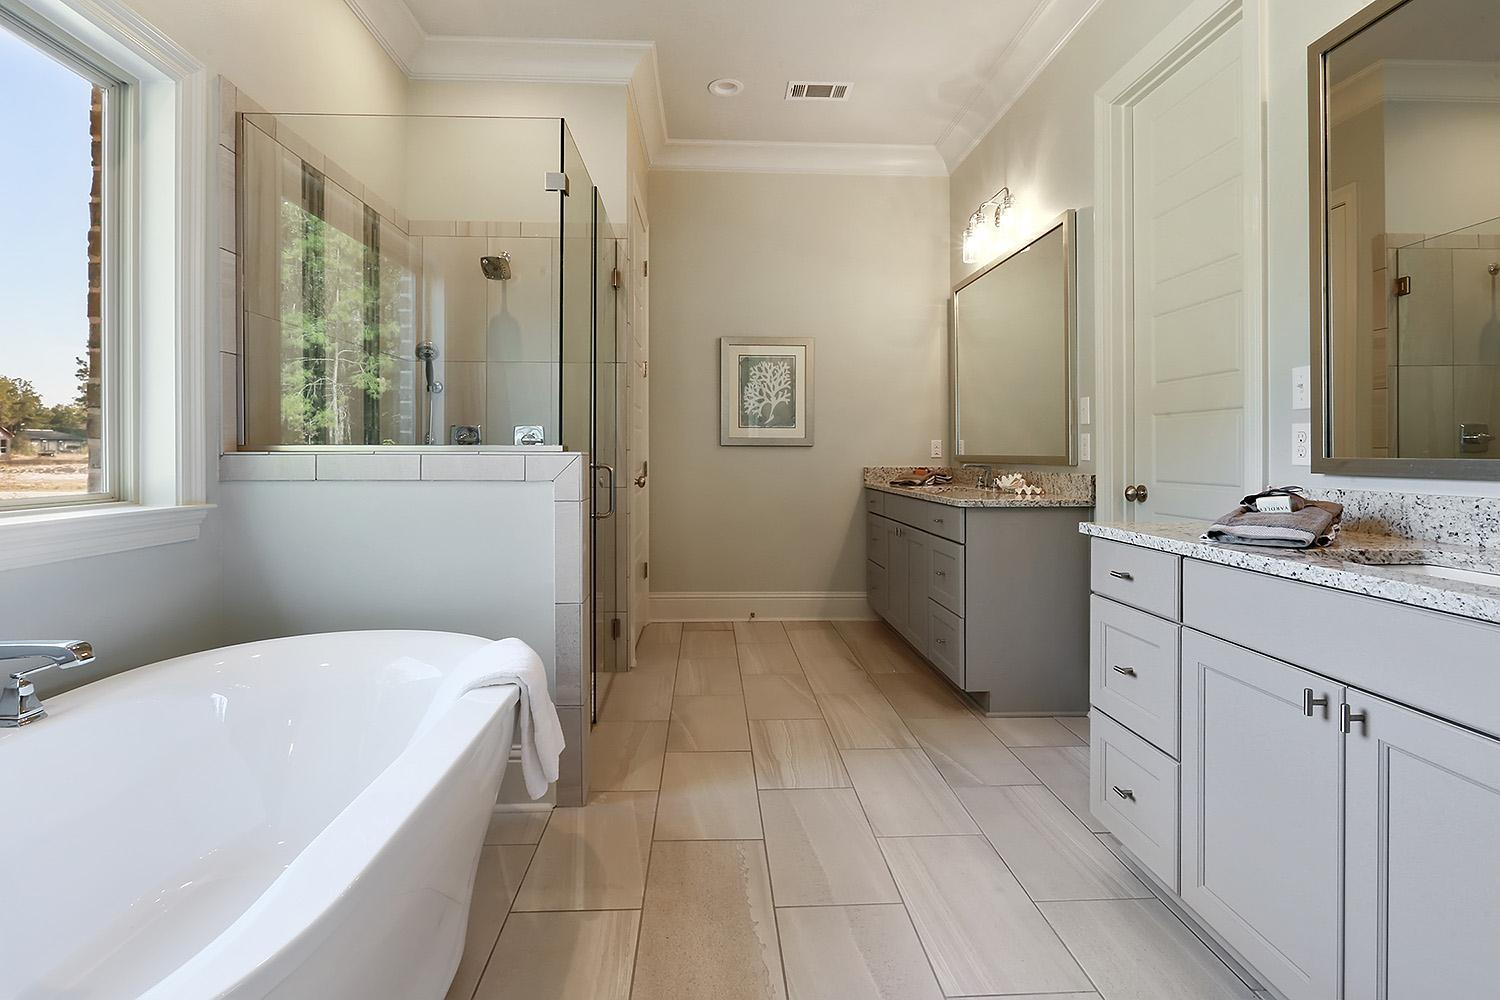 Bathroom featured in the Sandalwood By Highland Homes in New Orleans, LA